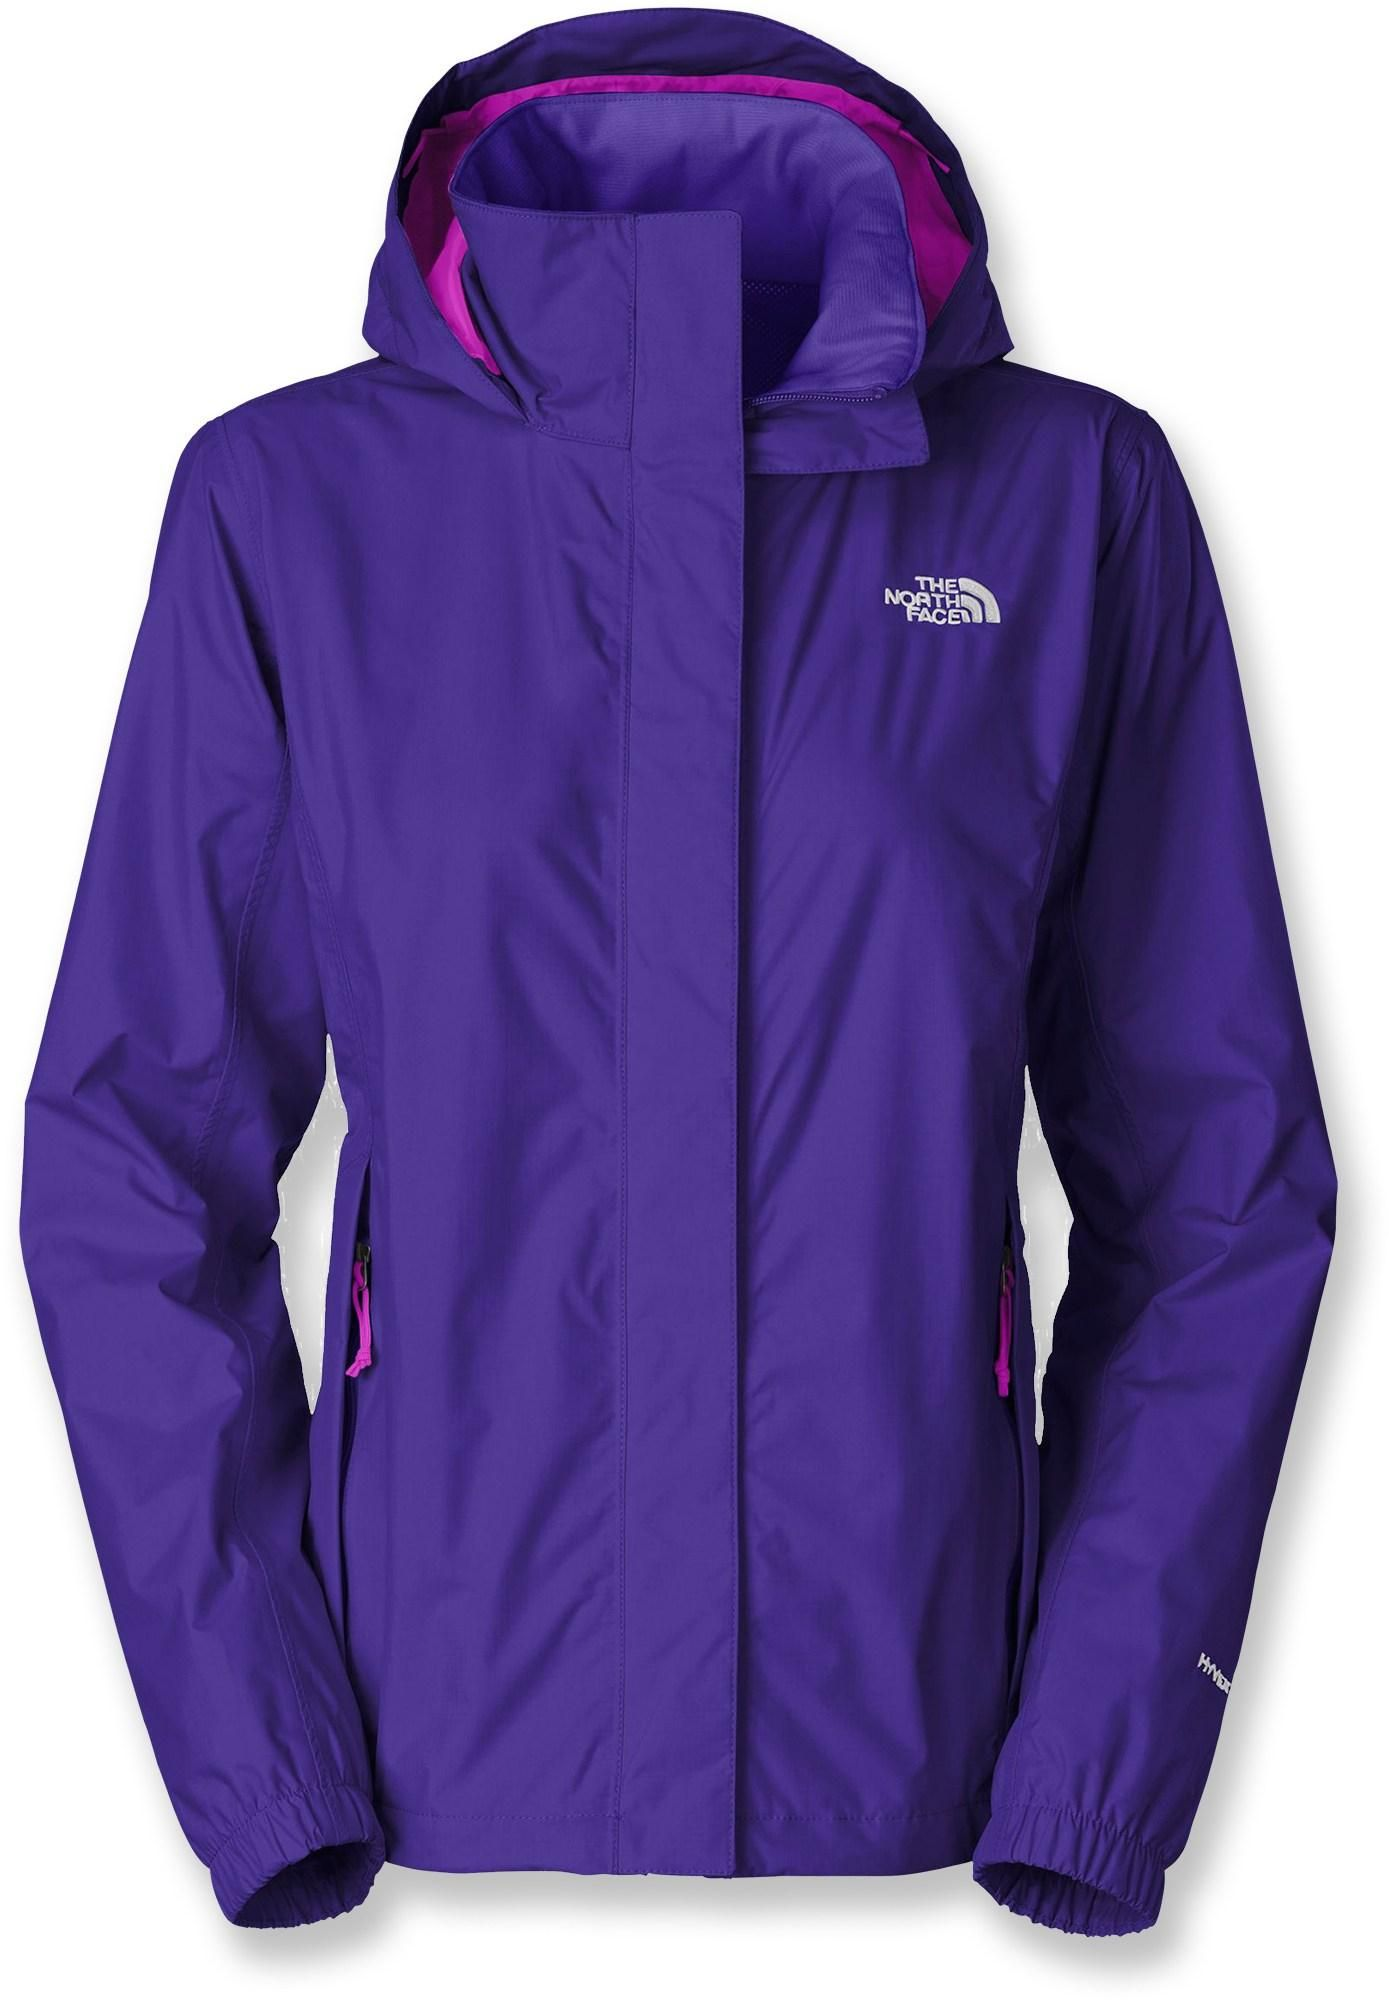 The North Face Resolve Rain Jacket Women S Rei Co Op Ropa Ropa Y Accesorios Buzo [ 2000 x 1389 Pixel ]